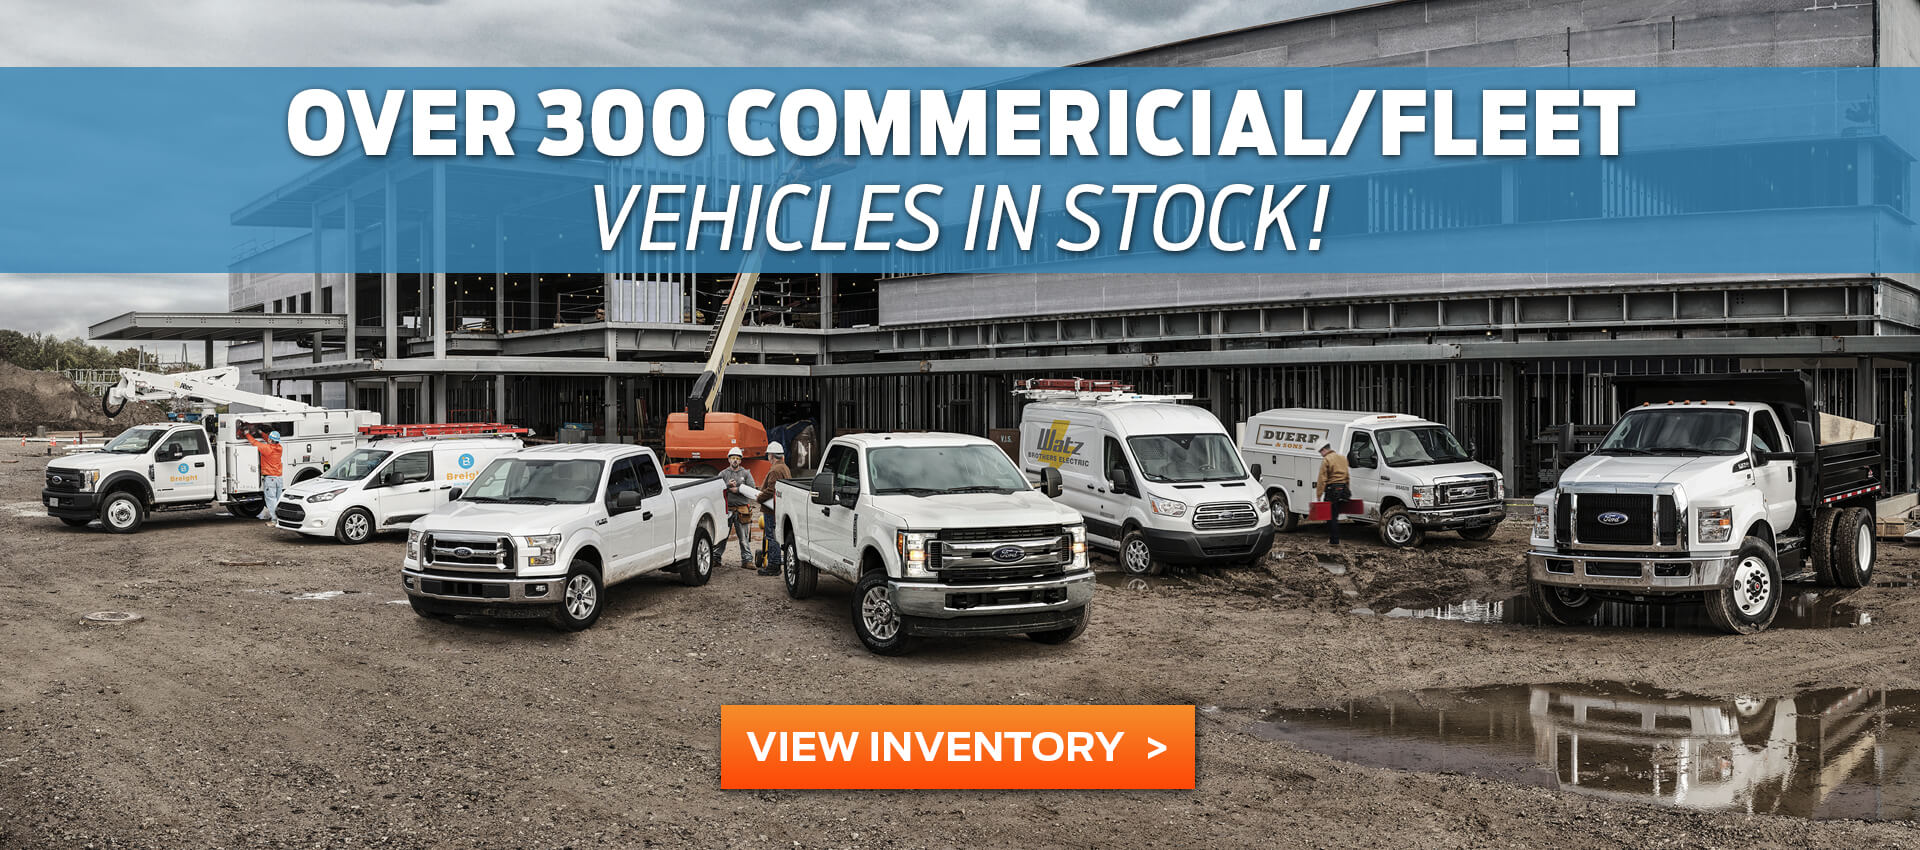 Commercial/Fleet